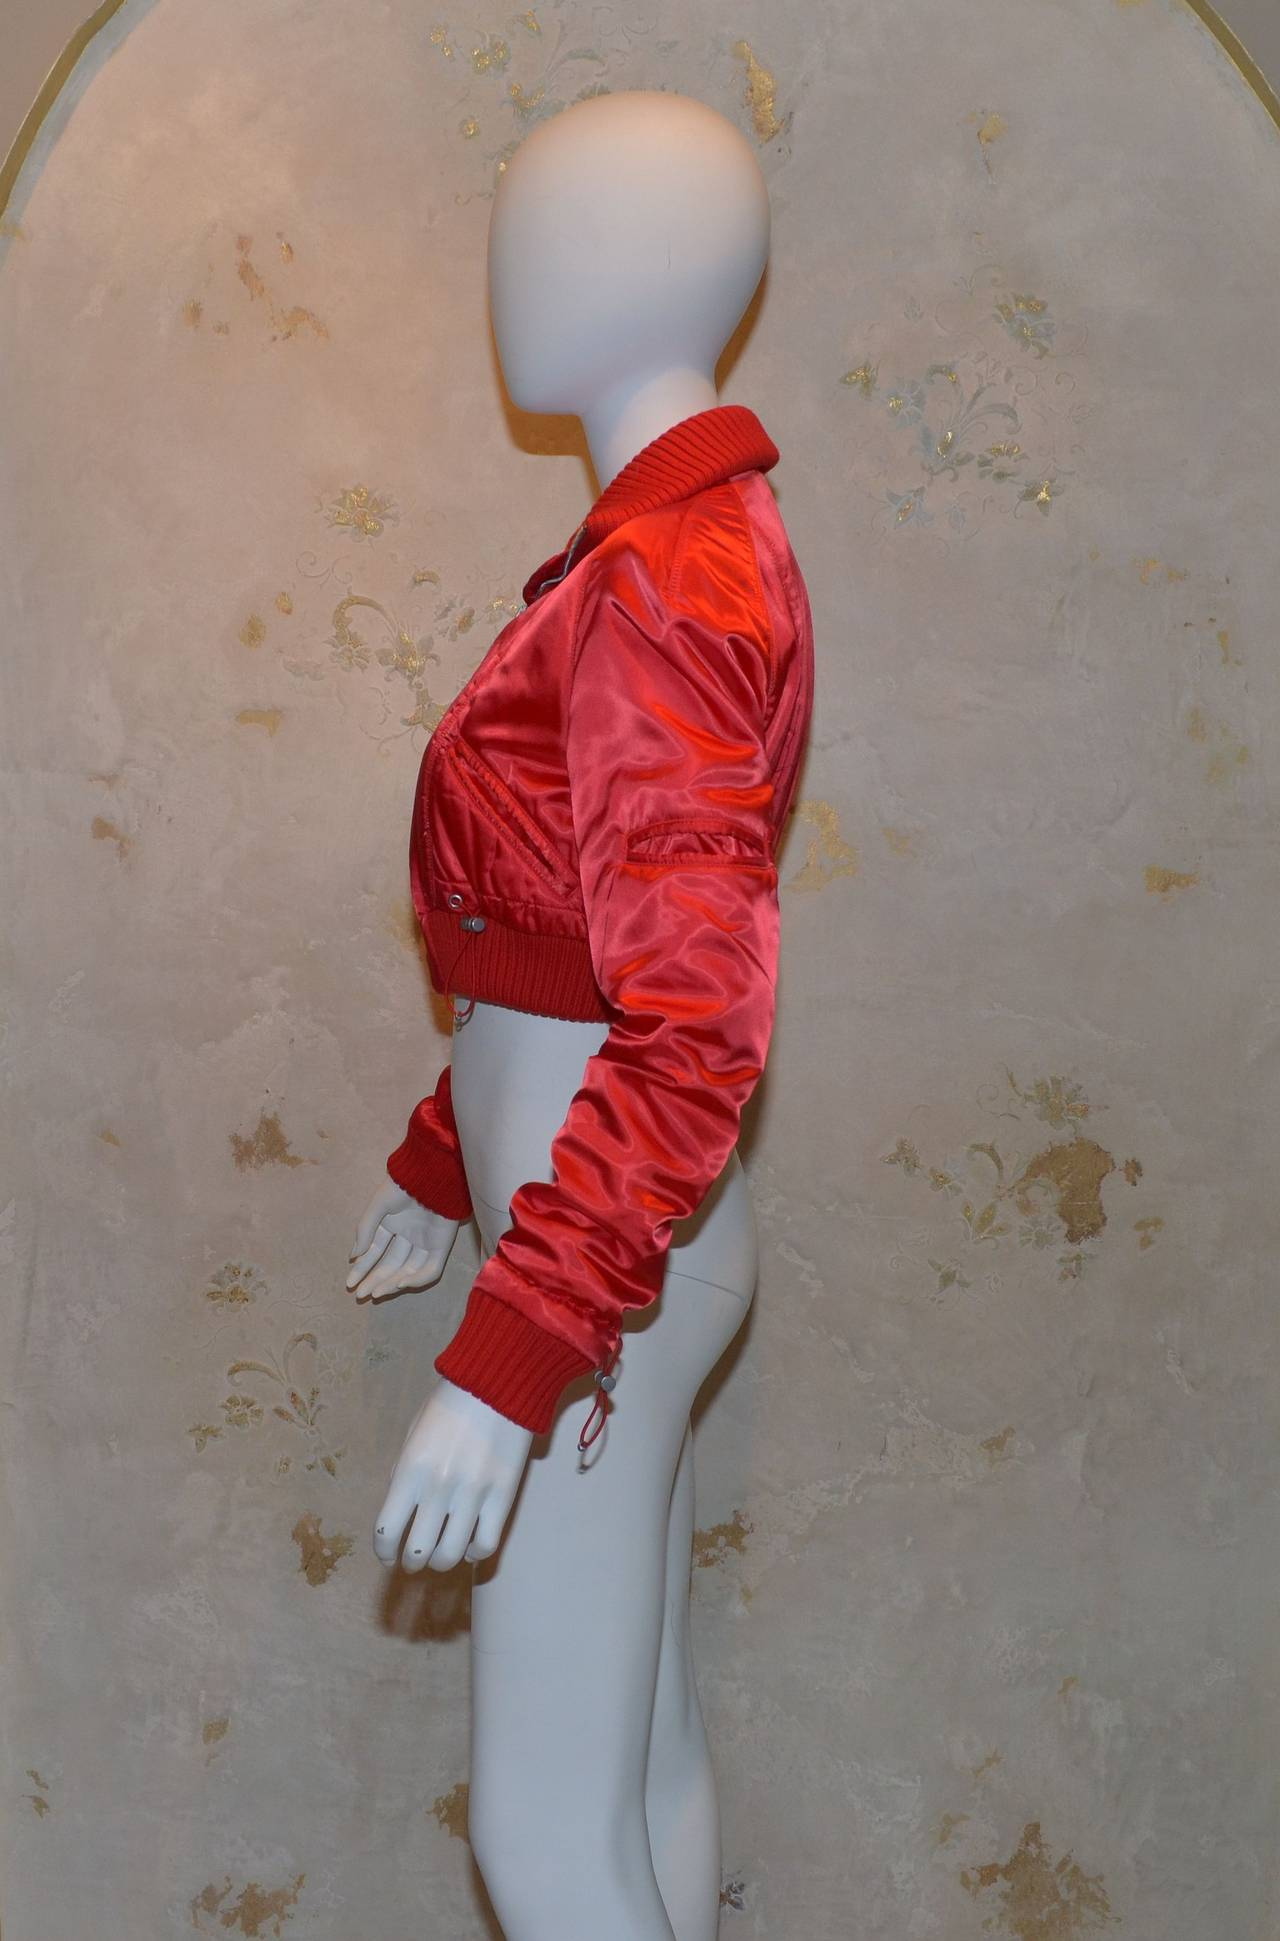 '03 A Chanel Collection Red Satin Crop Ribbed Bomber Jacket In Good Condition In Carmel by the Sea, CA